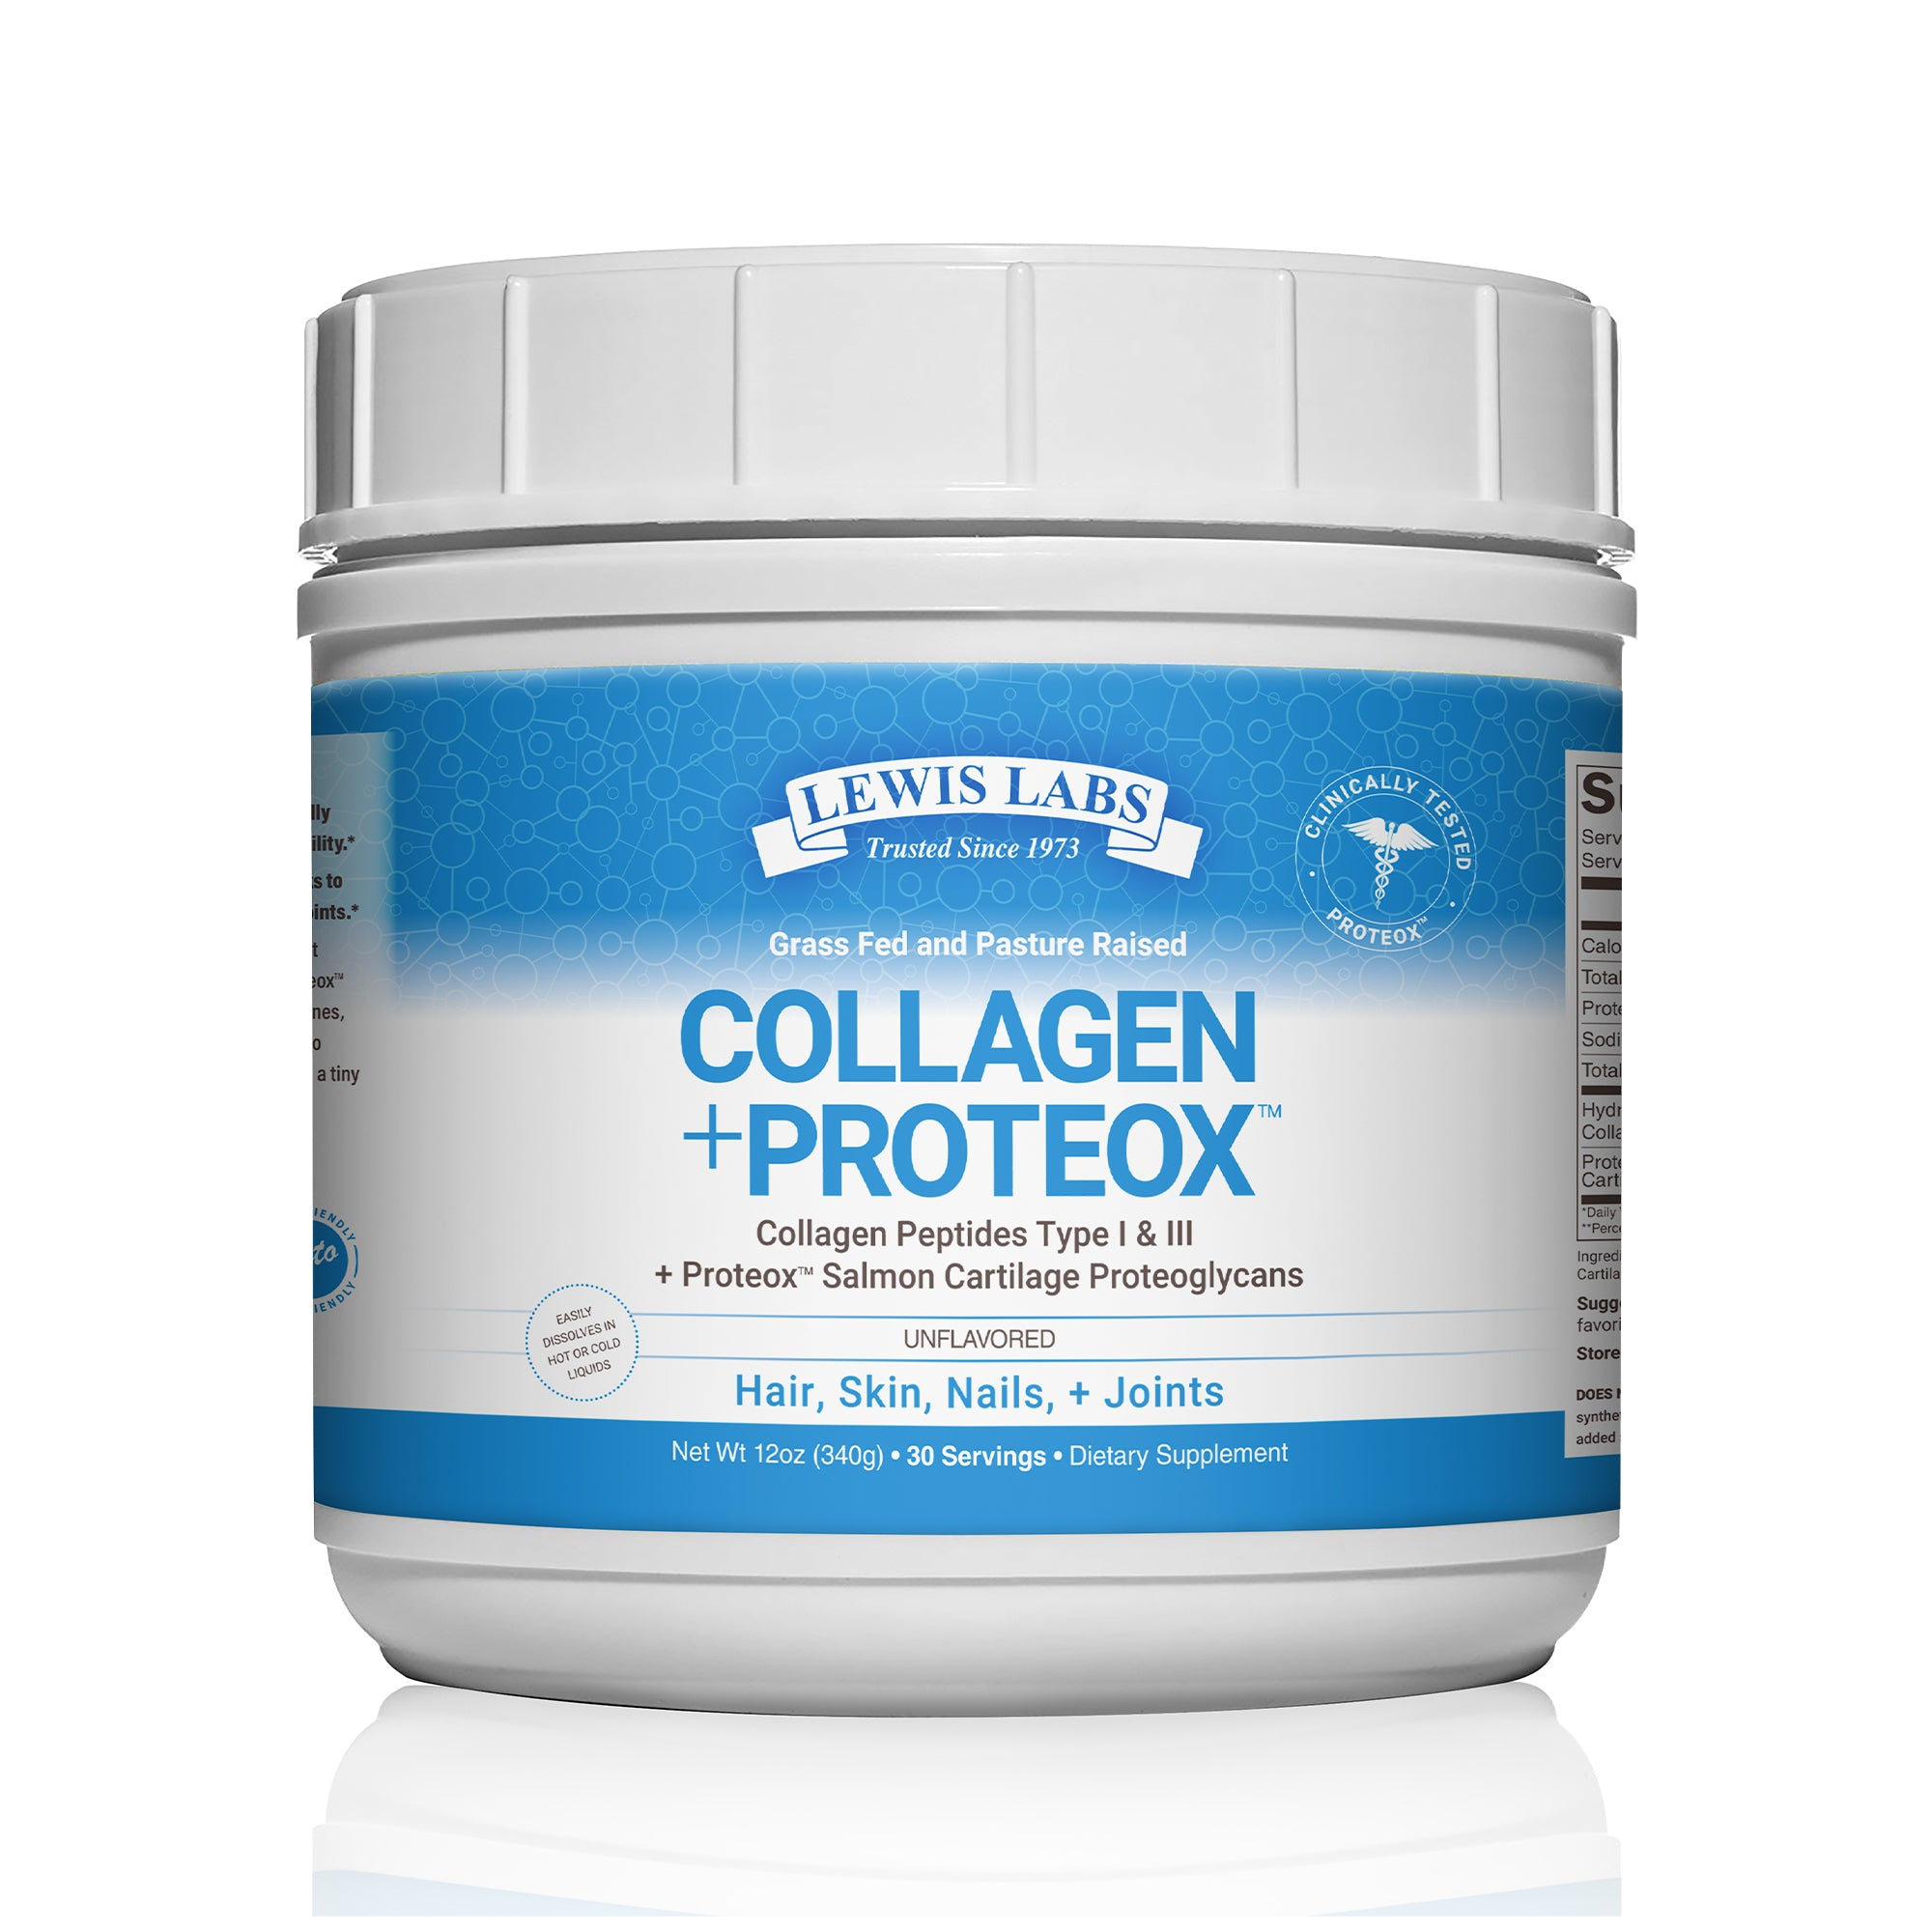 Collagen + Proteox 12 oz